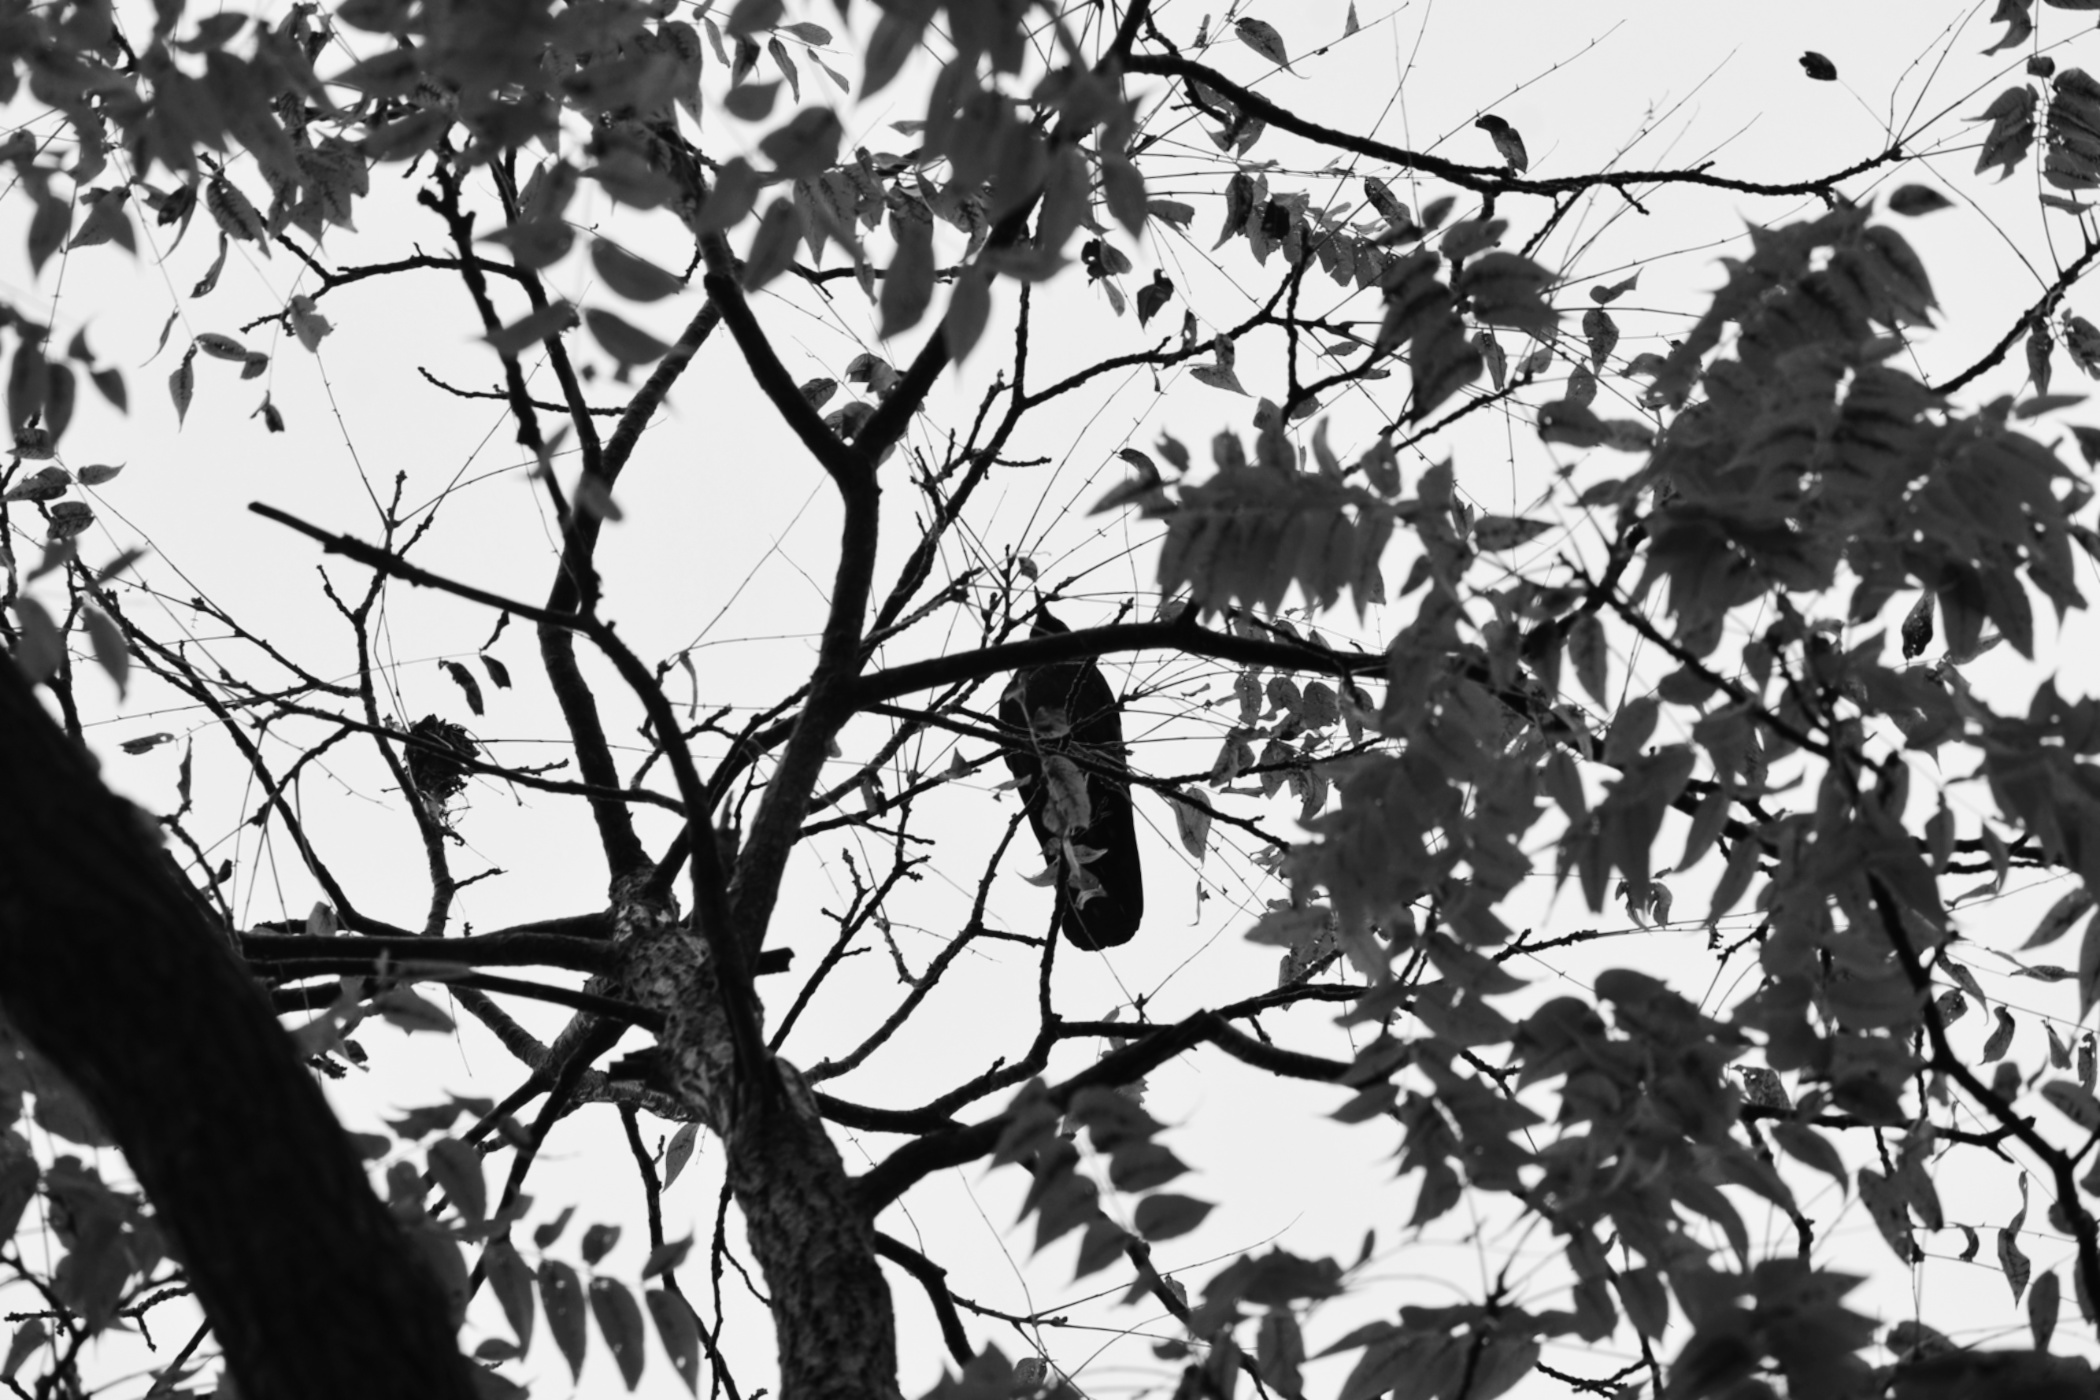 crow in the black walnut tree - thetemenosjournal.com